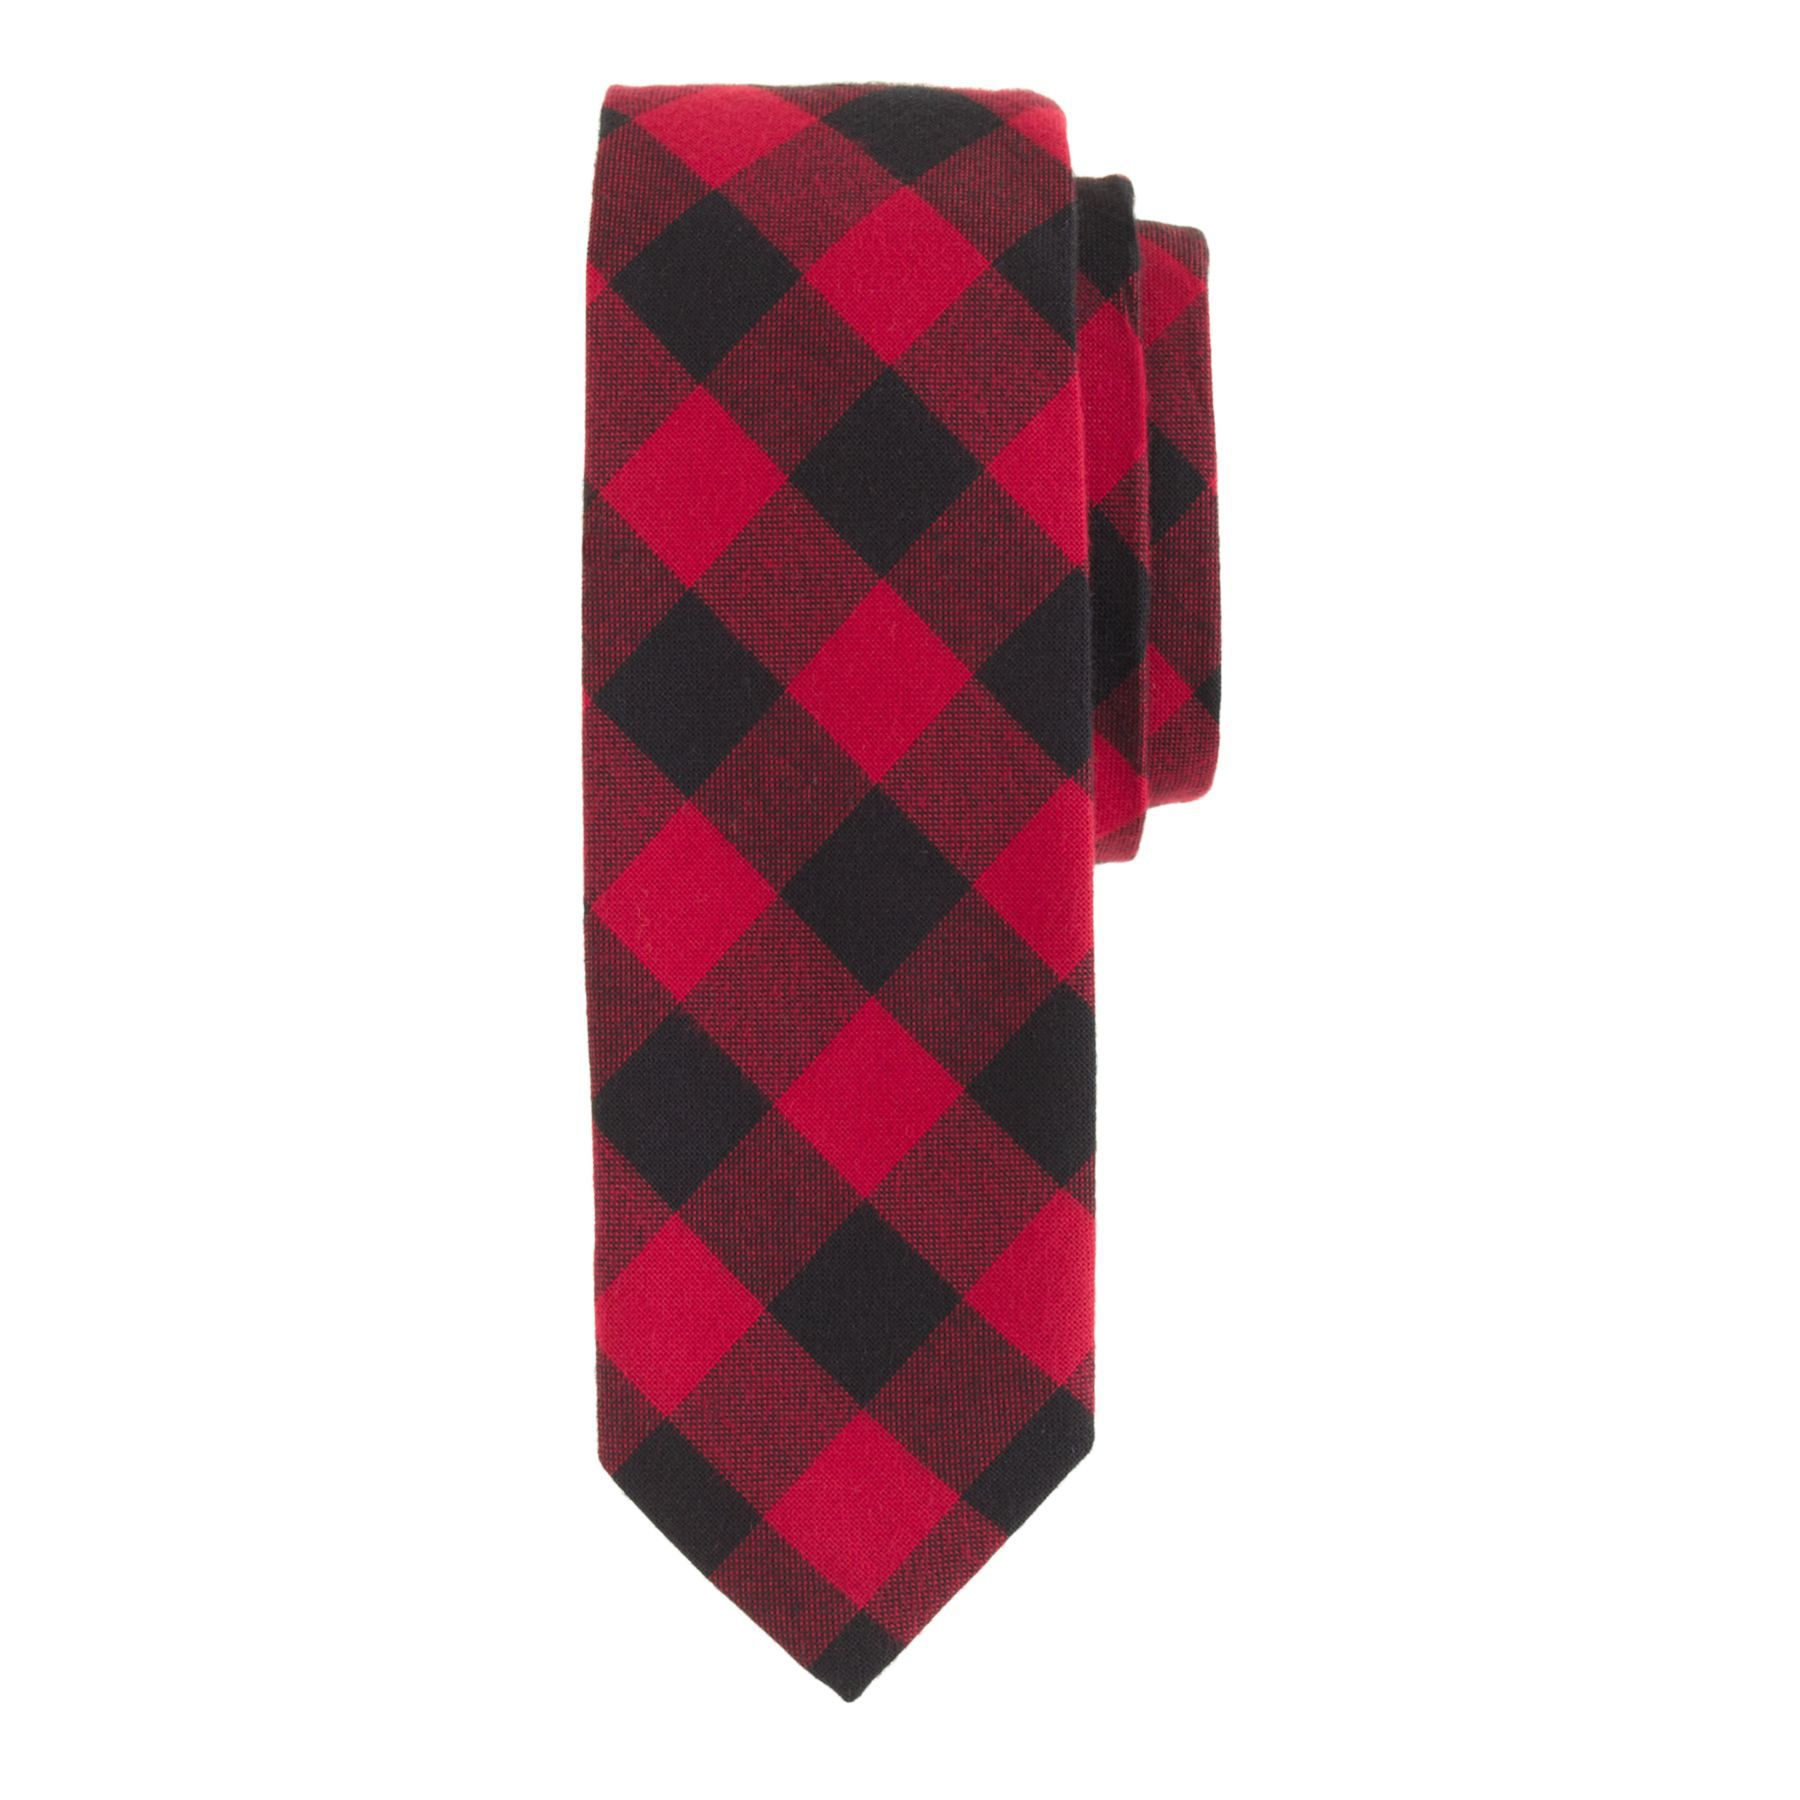 J.Crew men's cotton tie in holiday red buffalo check.